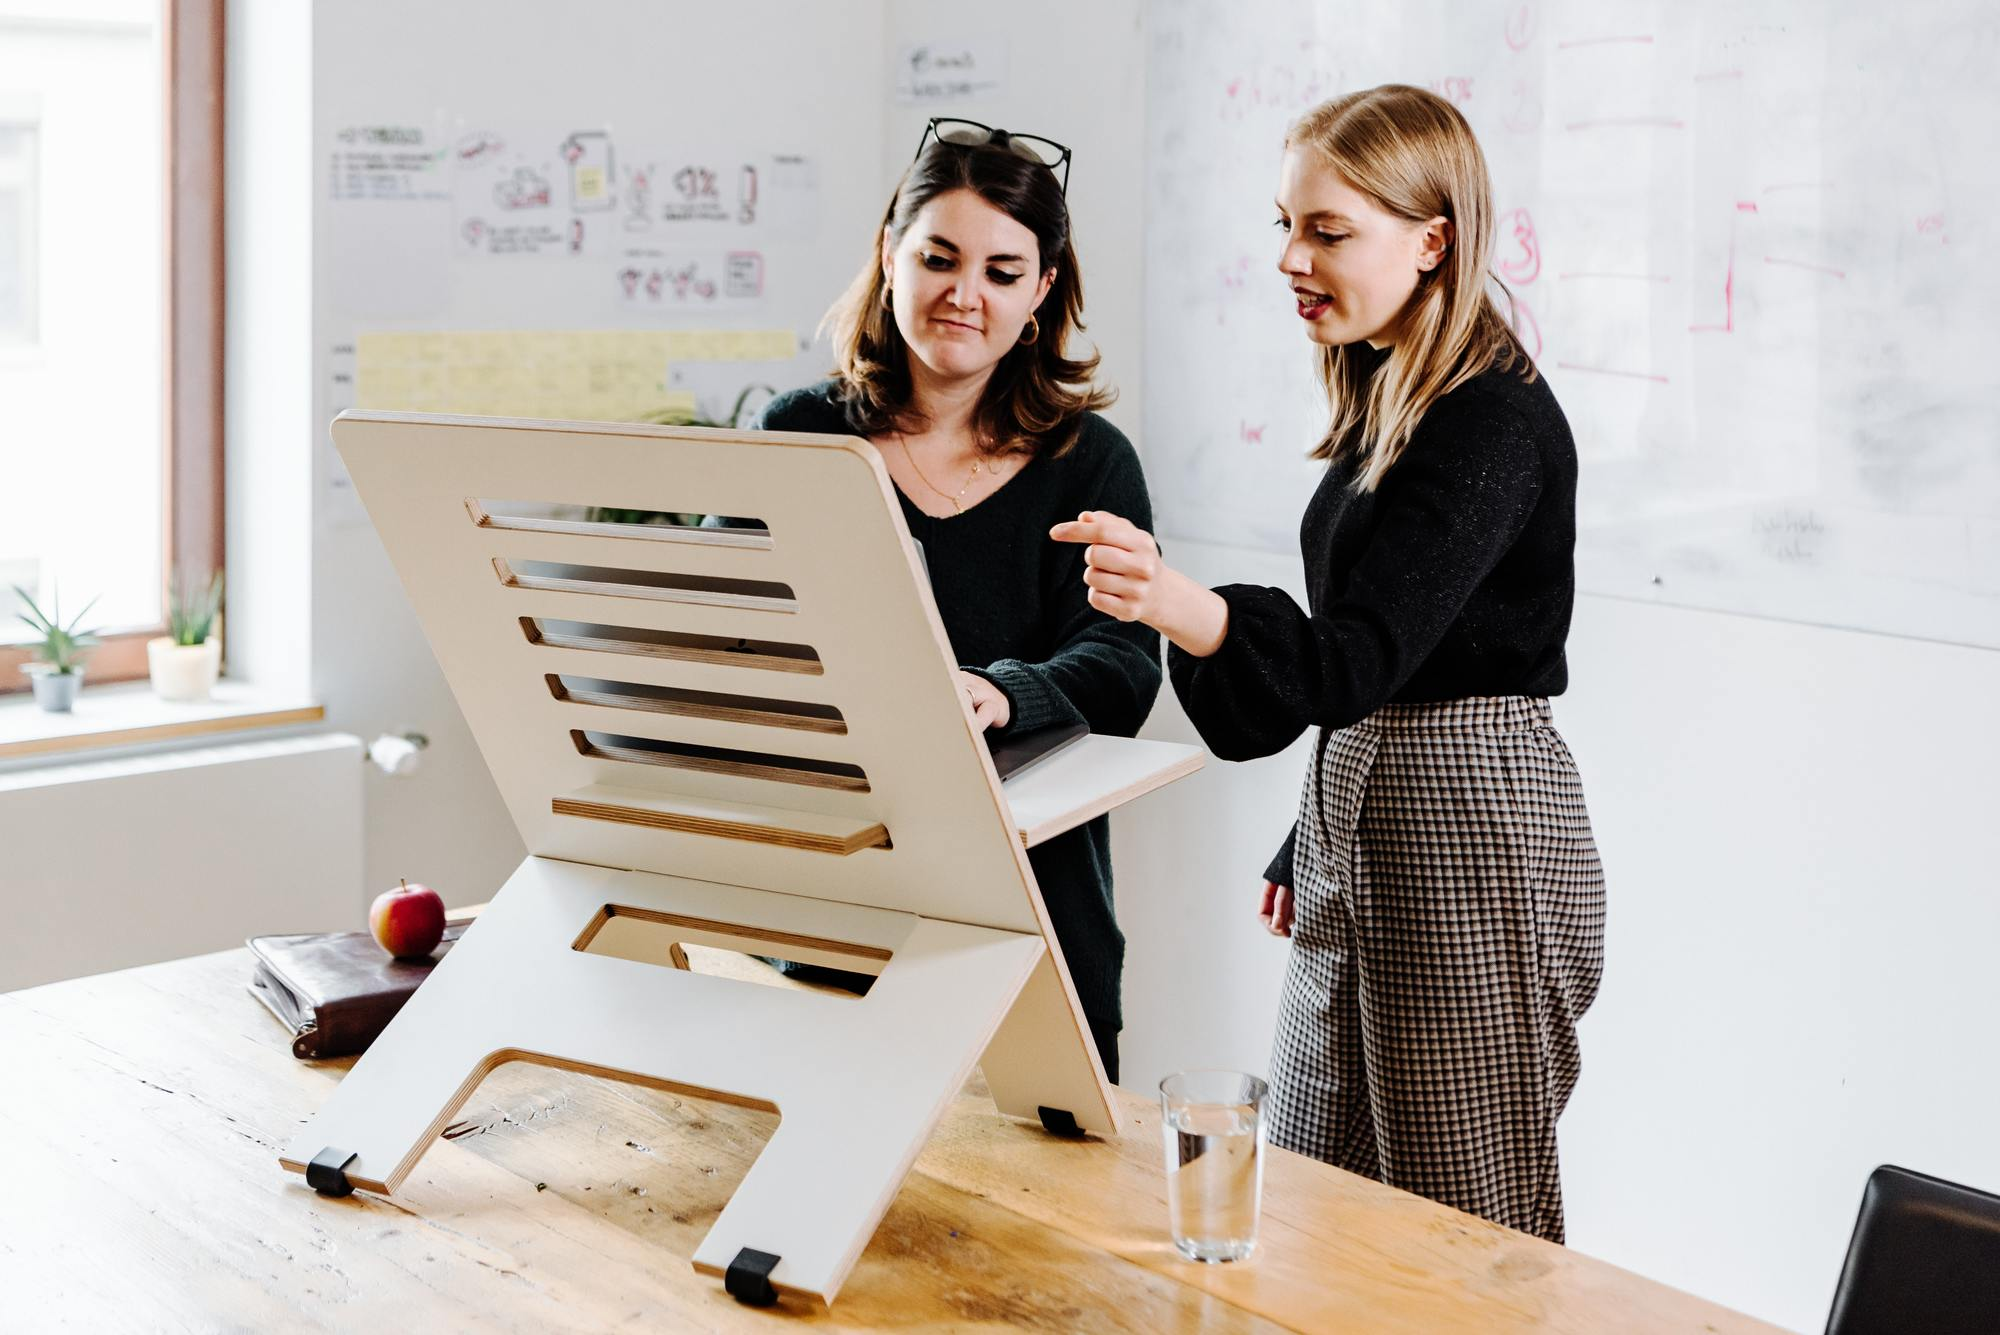 Two women in an office standing in front of a laptop on a desk stand.